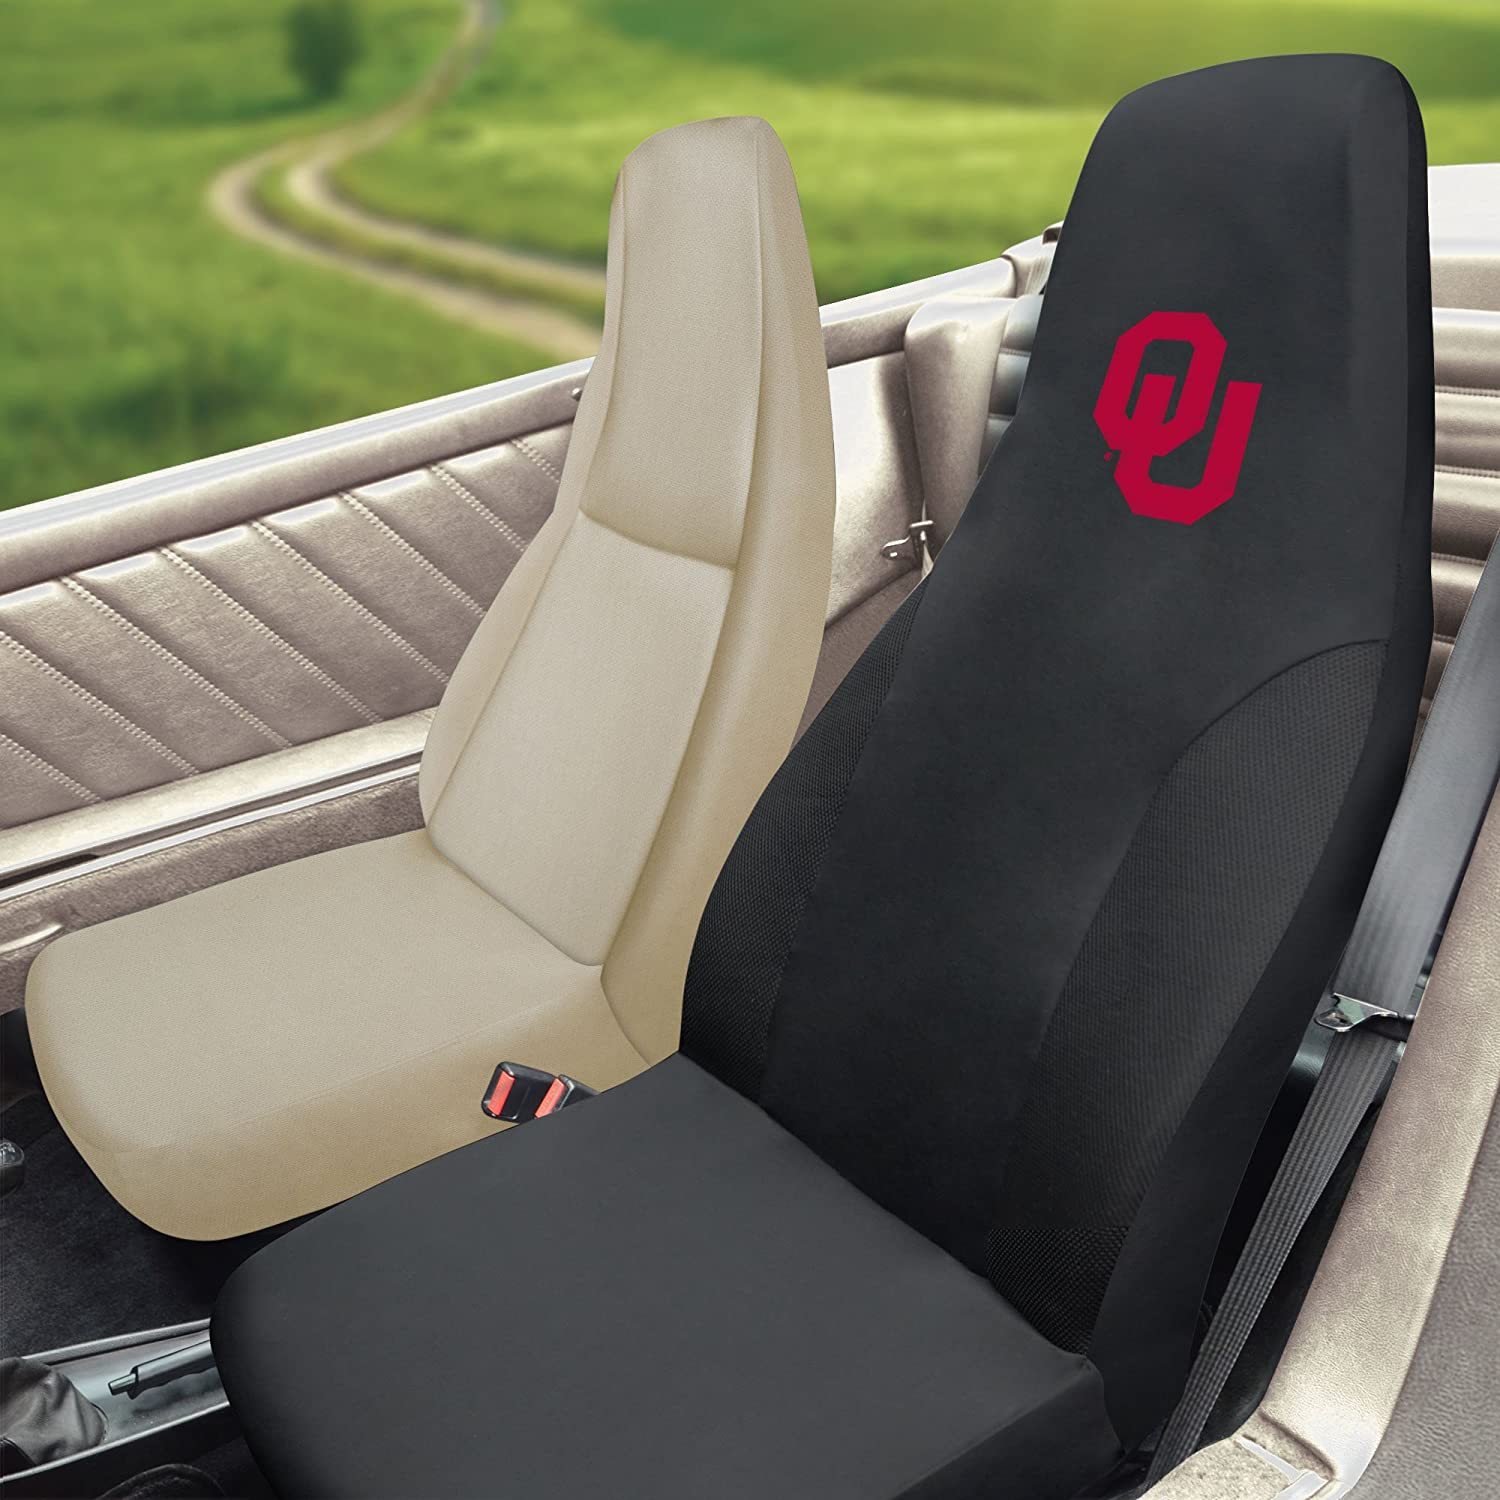 FANMATS NCAA University of Oklahoma Sooners Polyester Seat Cover 15065